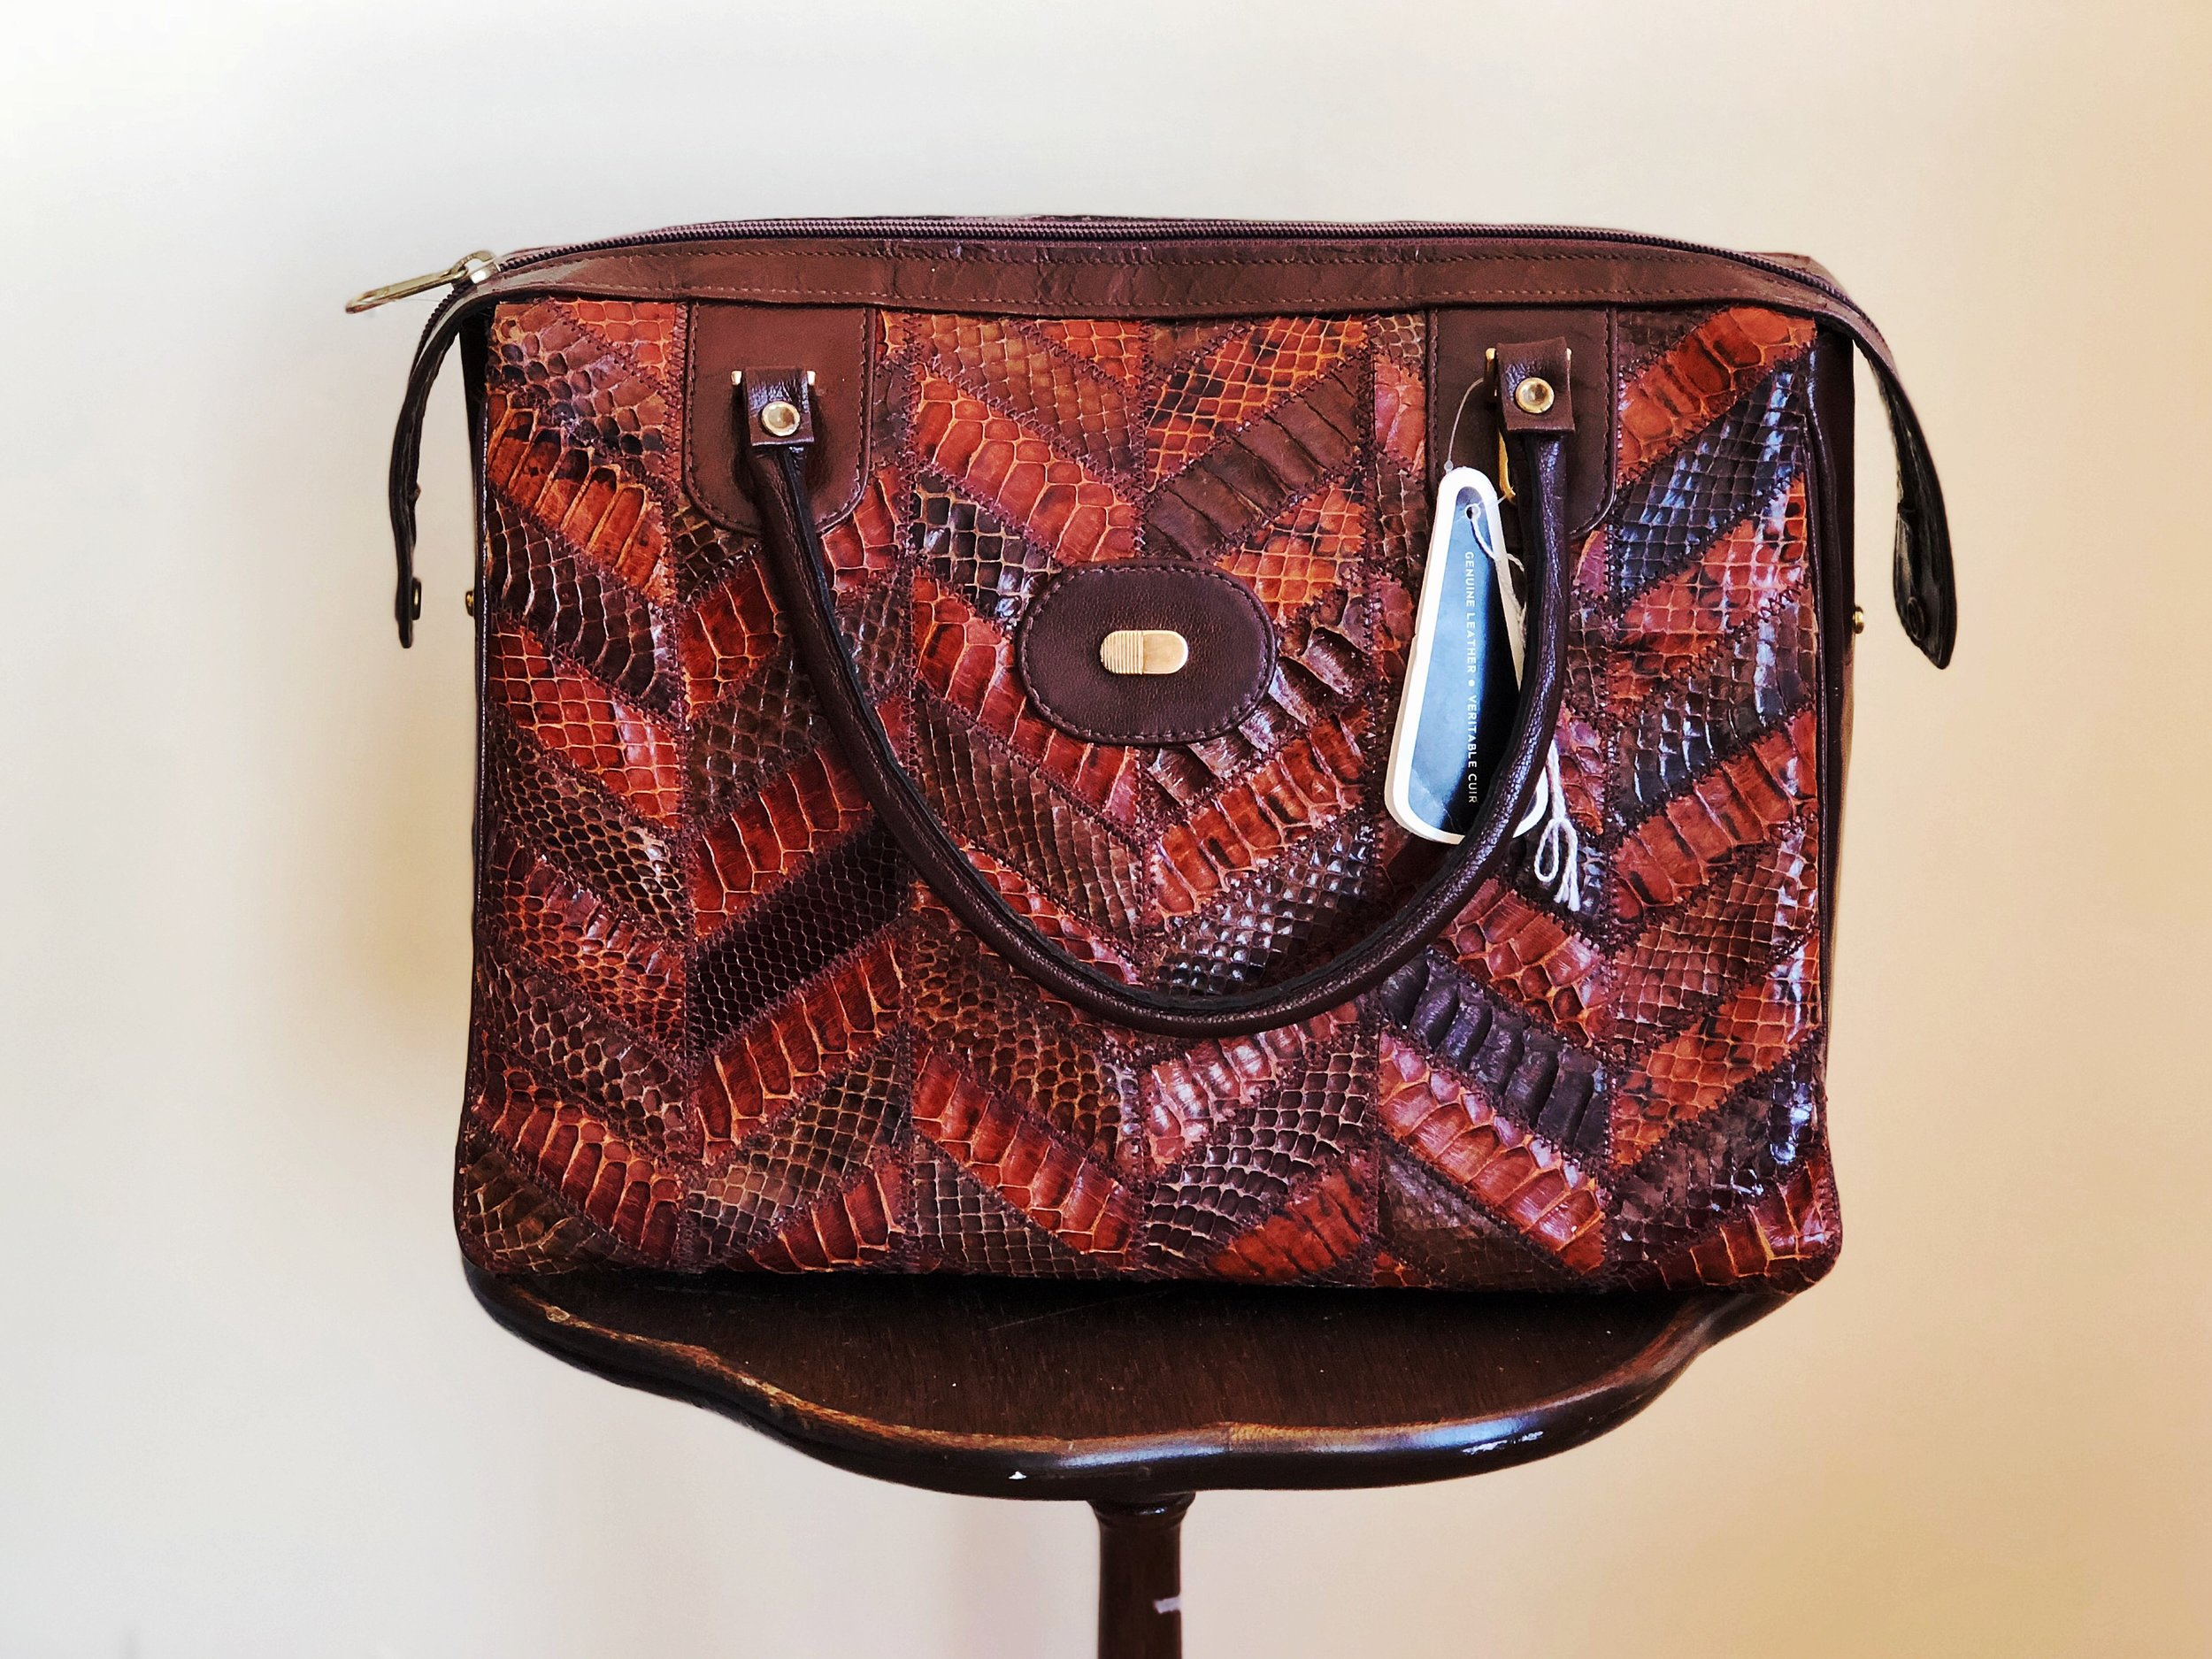 This gorgeous vintage La Belle snakeskin handbag still has the original tags. Made in Montreal in the 1970s. Proof that quality and classic style are timeless.